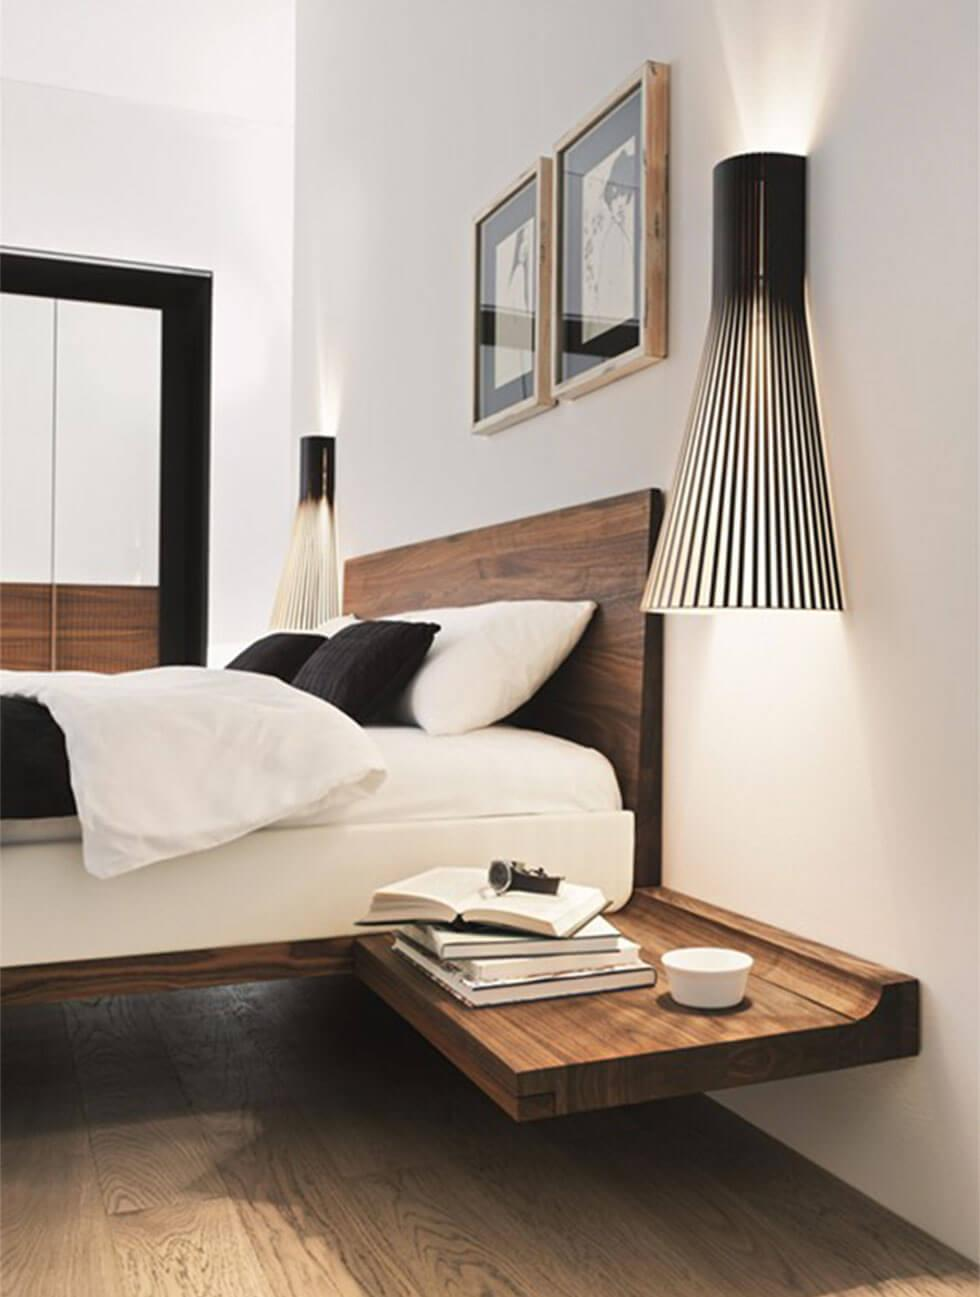 Minimal bedroom with floating bed and modern wall lamps